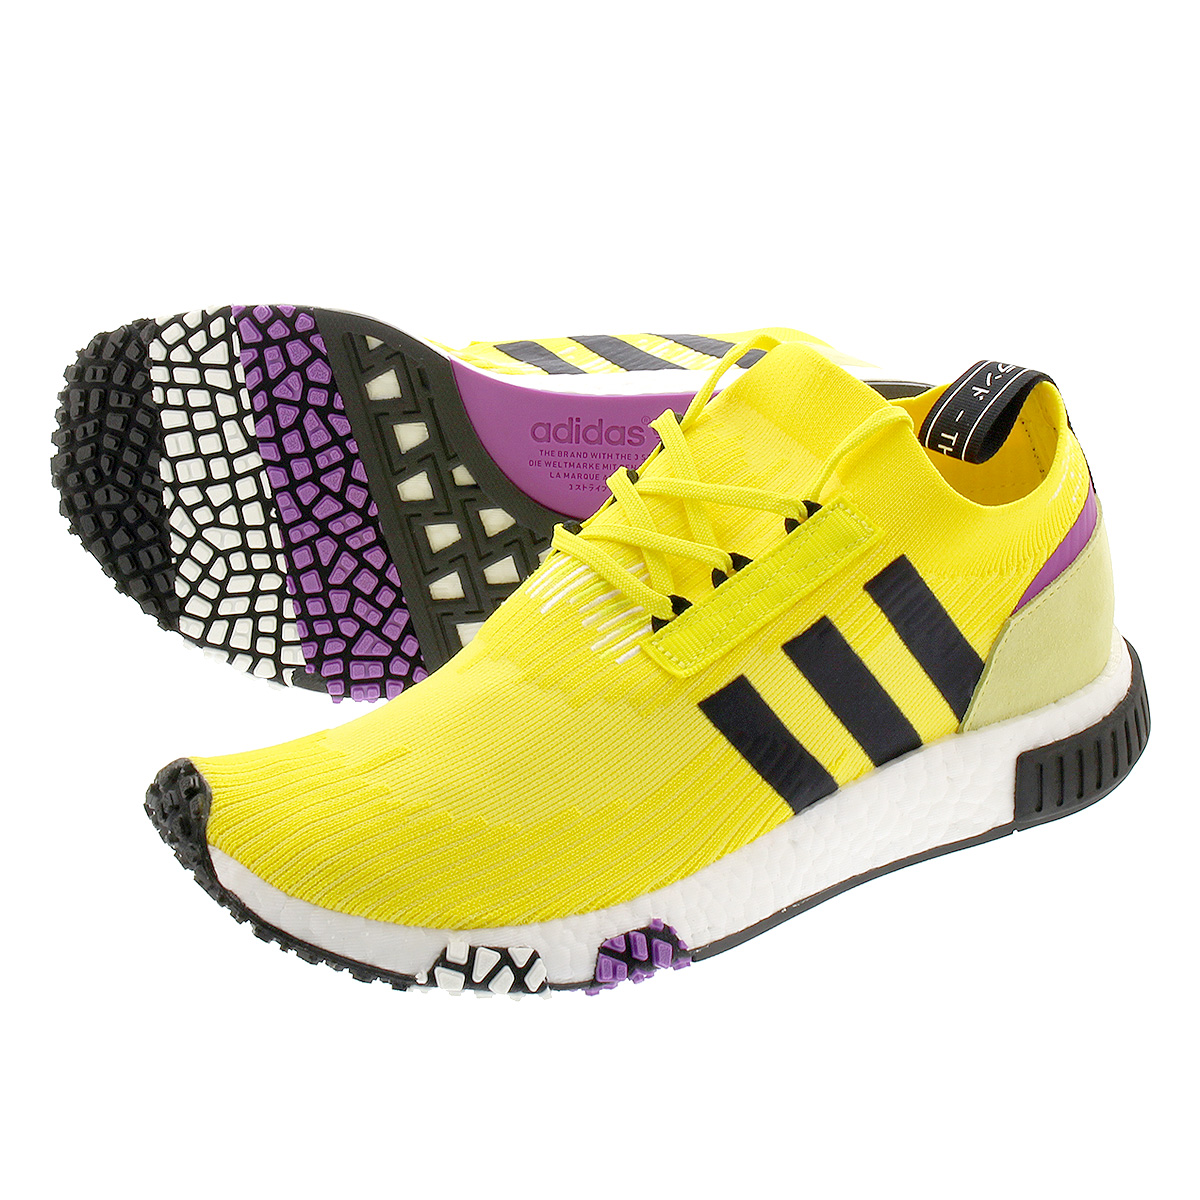 adidas NMD_RACER PK アディダス NMD レーサー PK SOLAR YELLOW/CORE BLACK/PURPLE